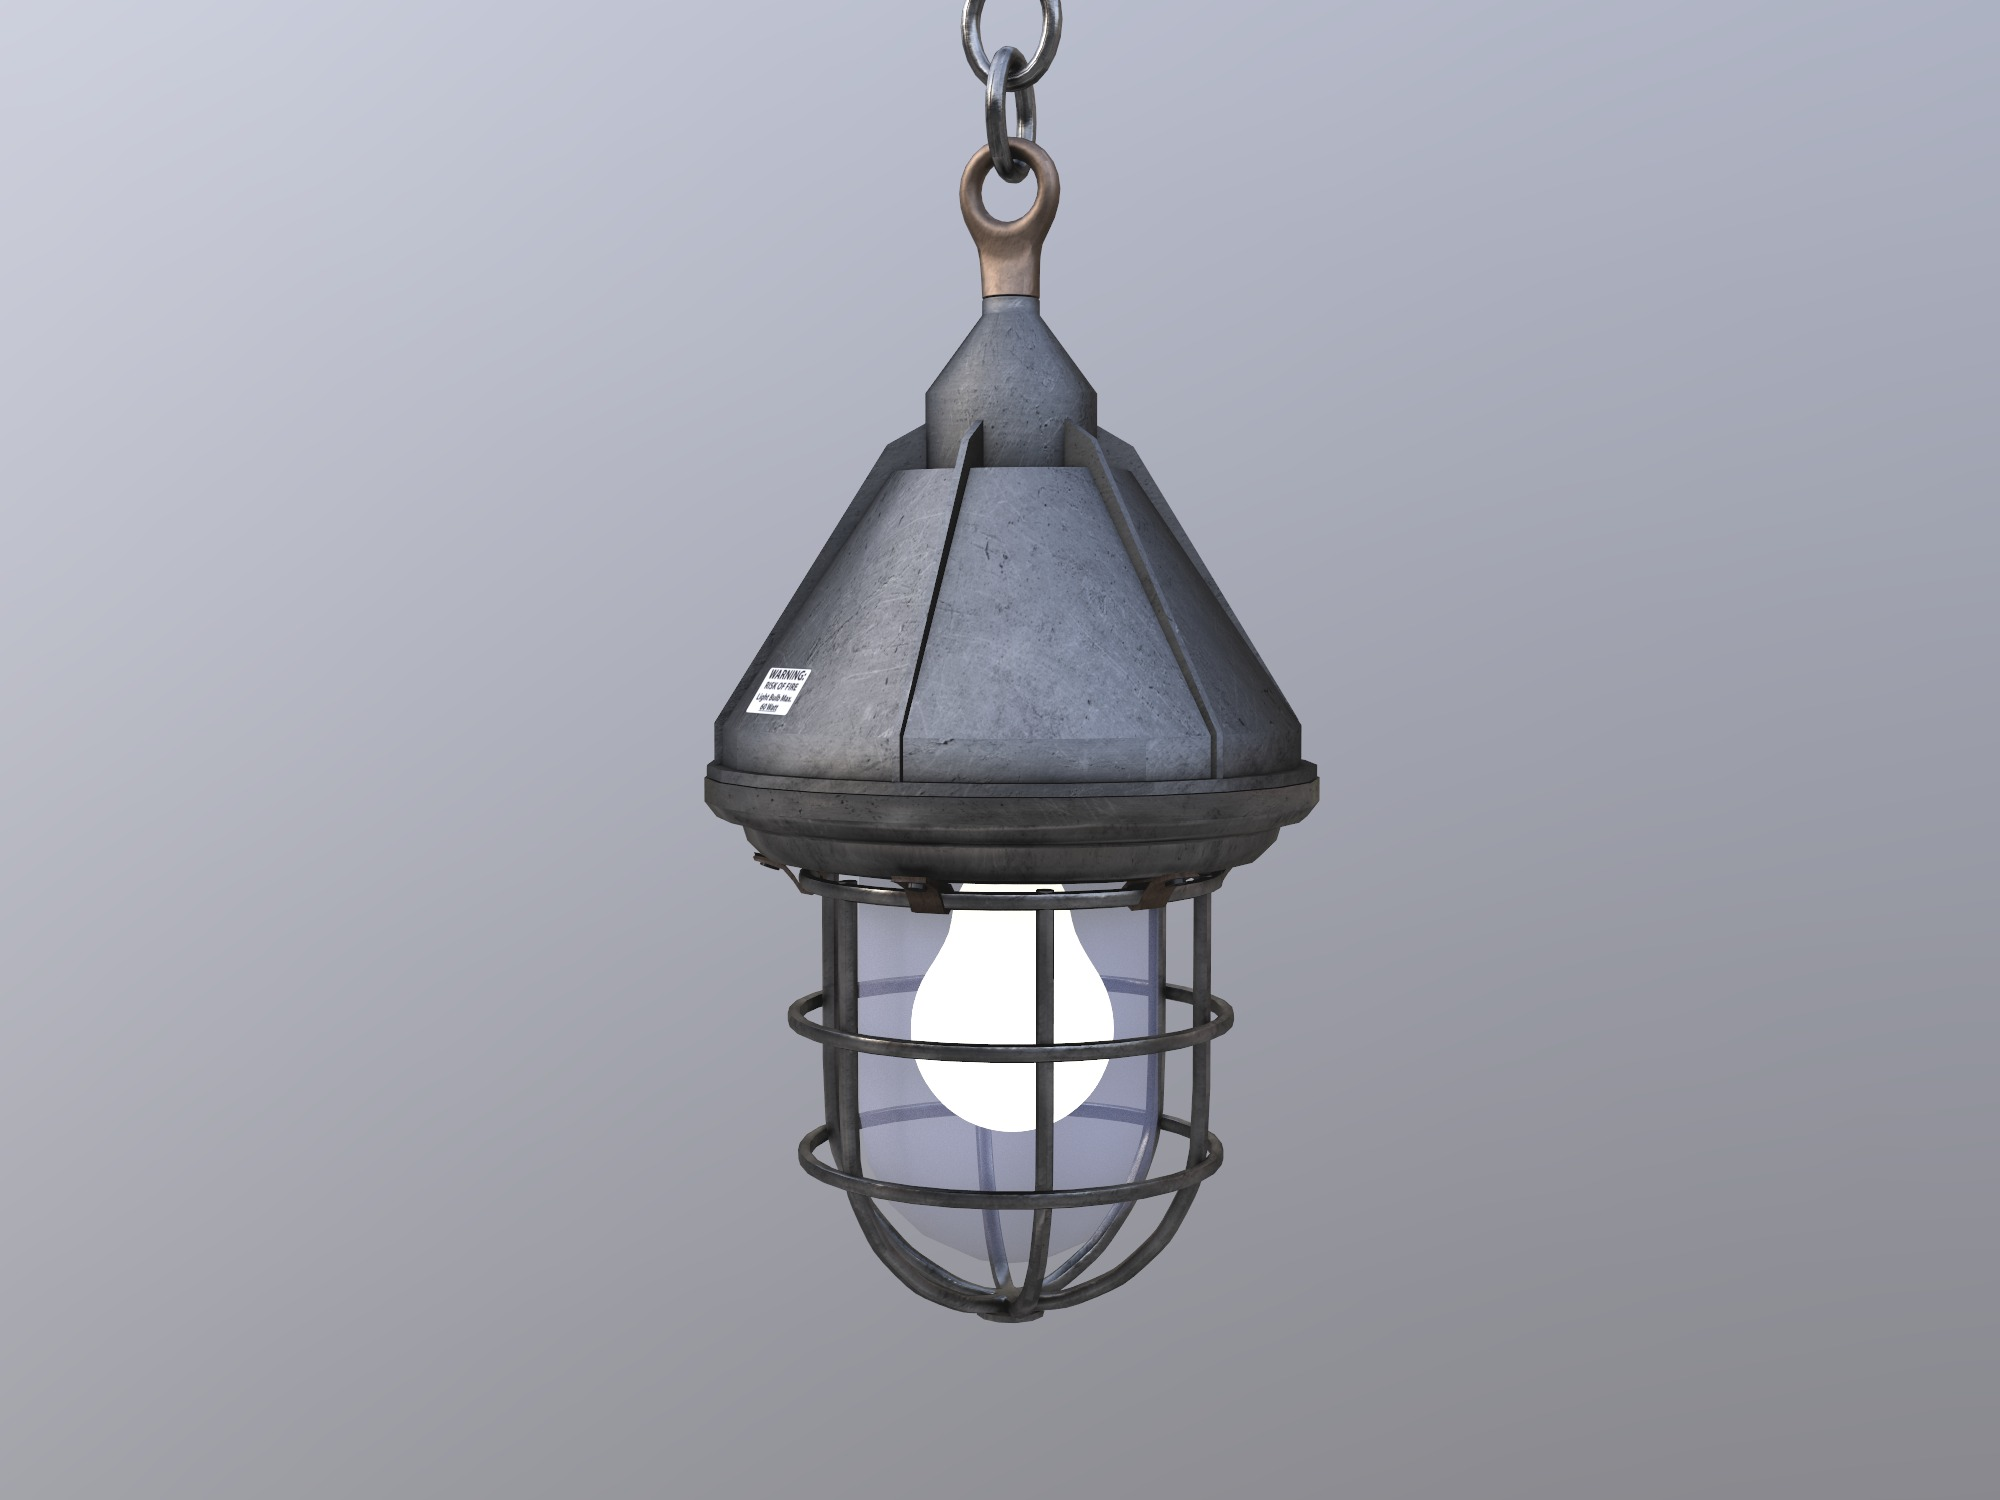 Industrial lamp - 3D design by blabla Aug 22, 2018